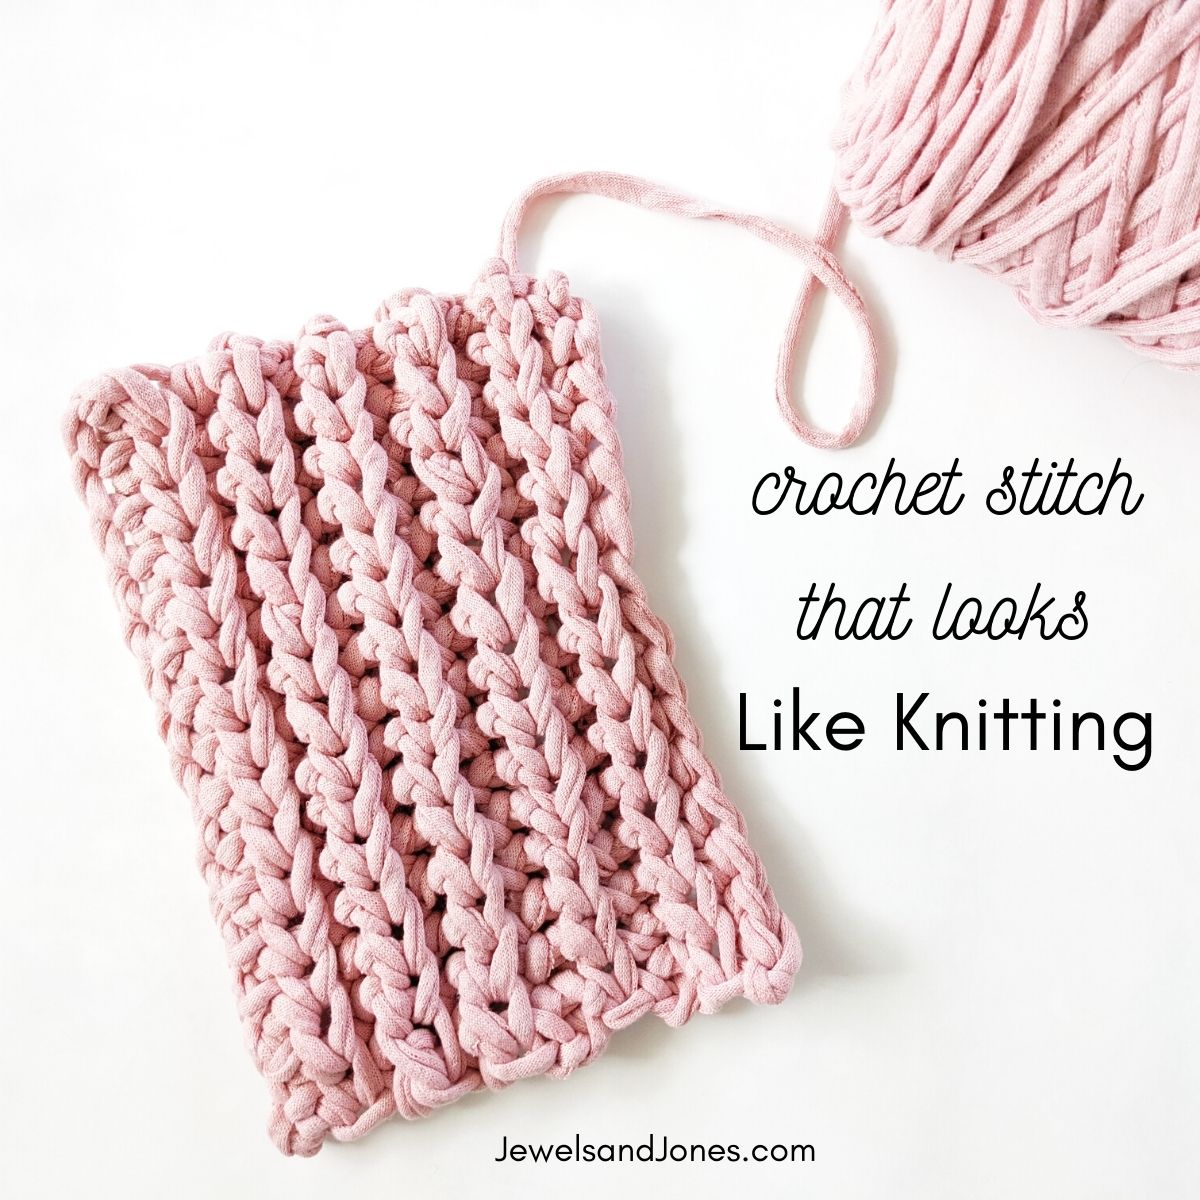 How to crochet a stitch that looks like knitting